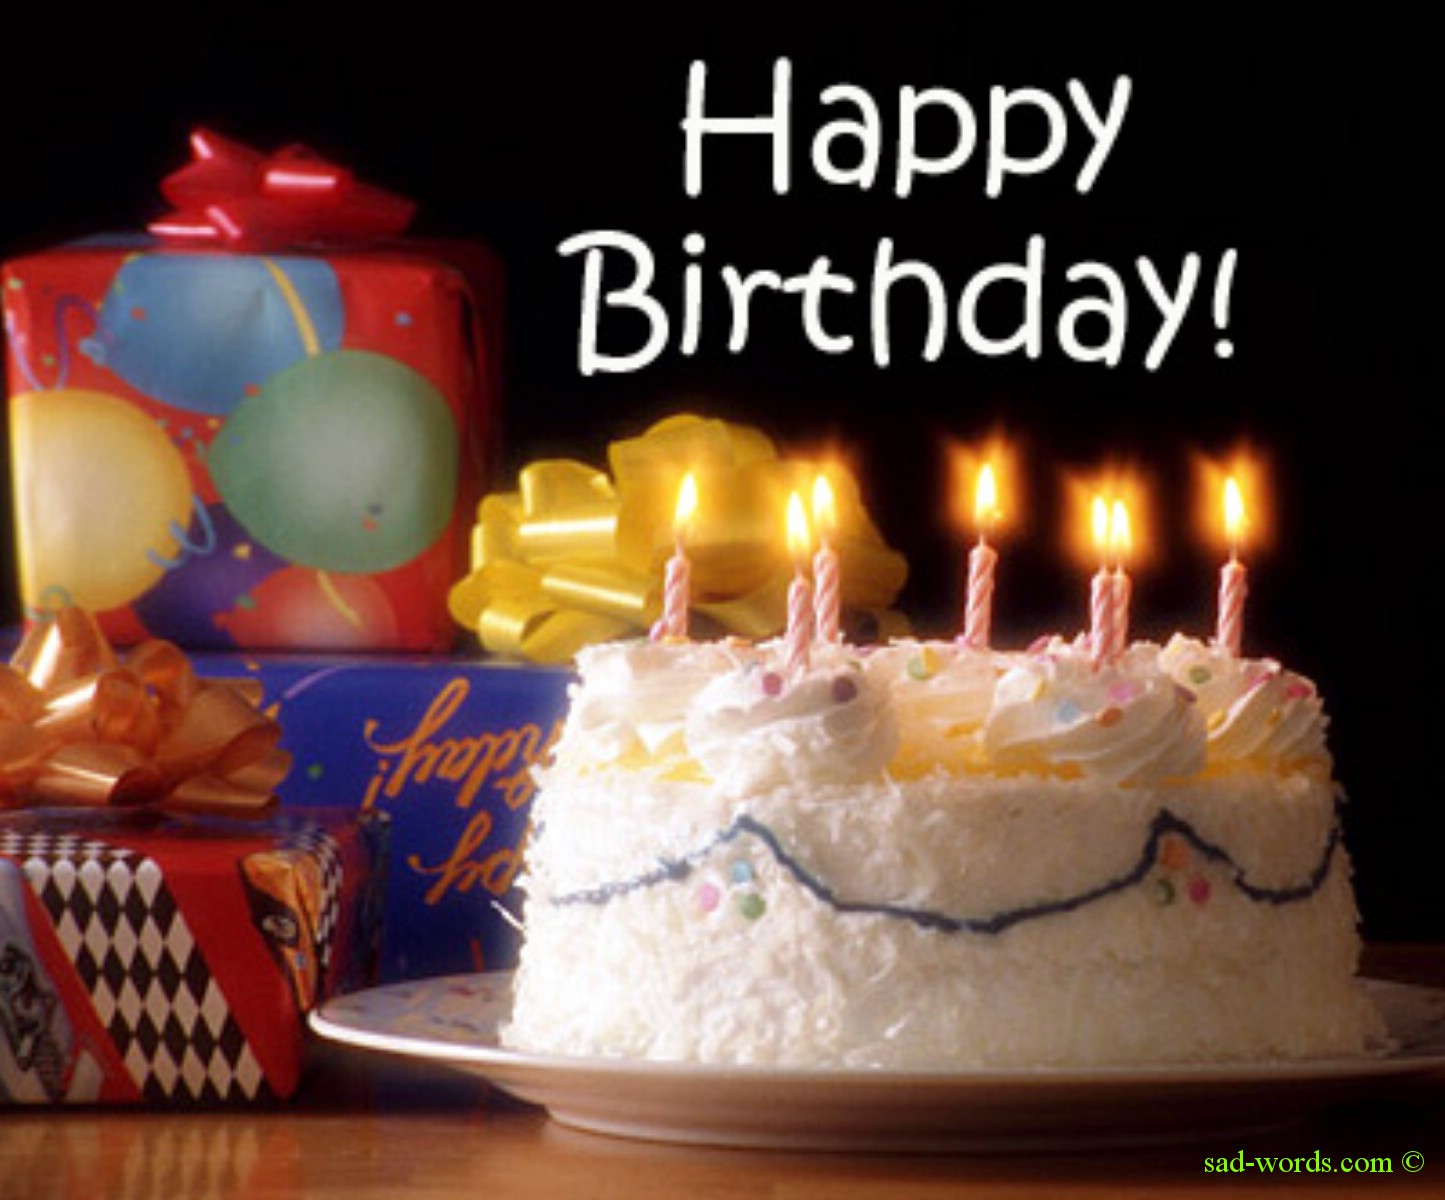 صور تورت لاعياد الميلاد http://www.sad-words.com/2013/05/Happy-birthday-cake-hd.html